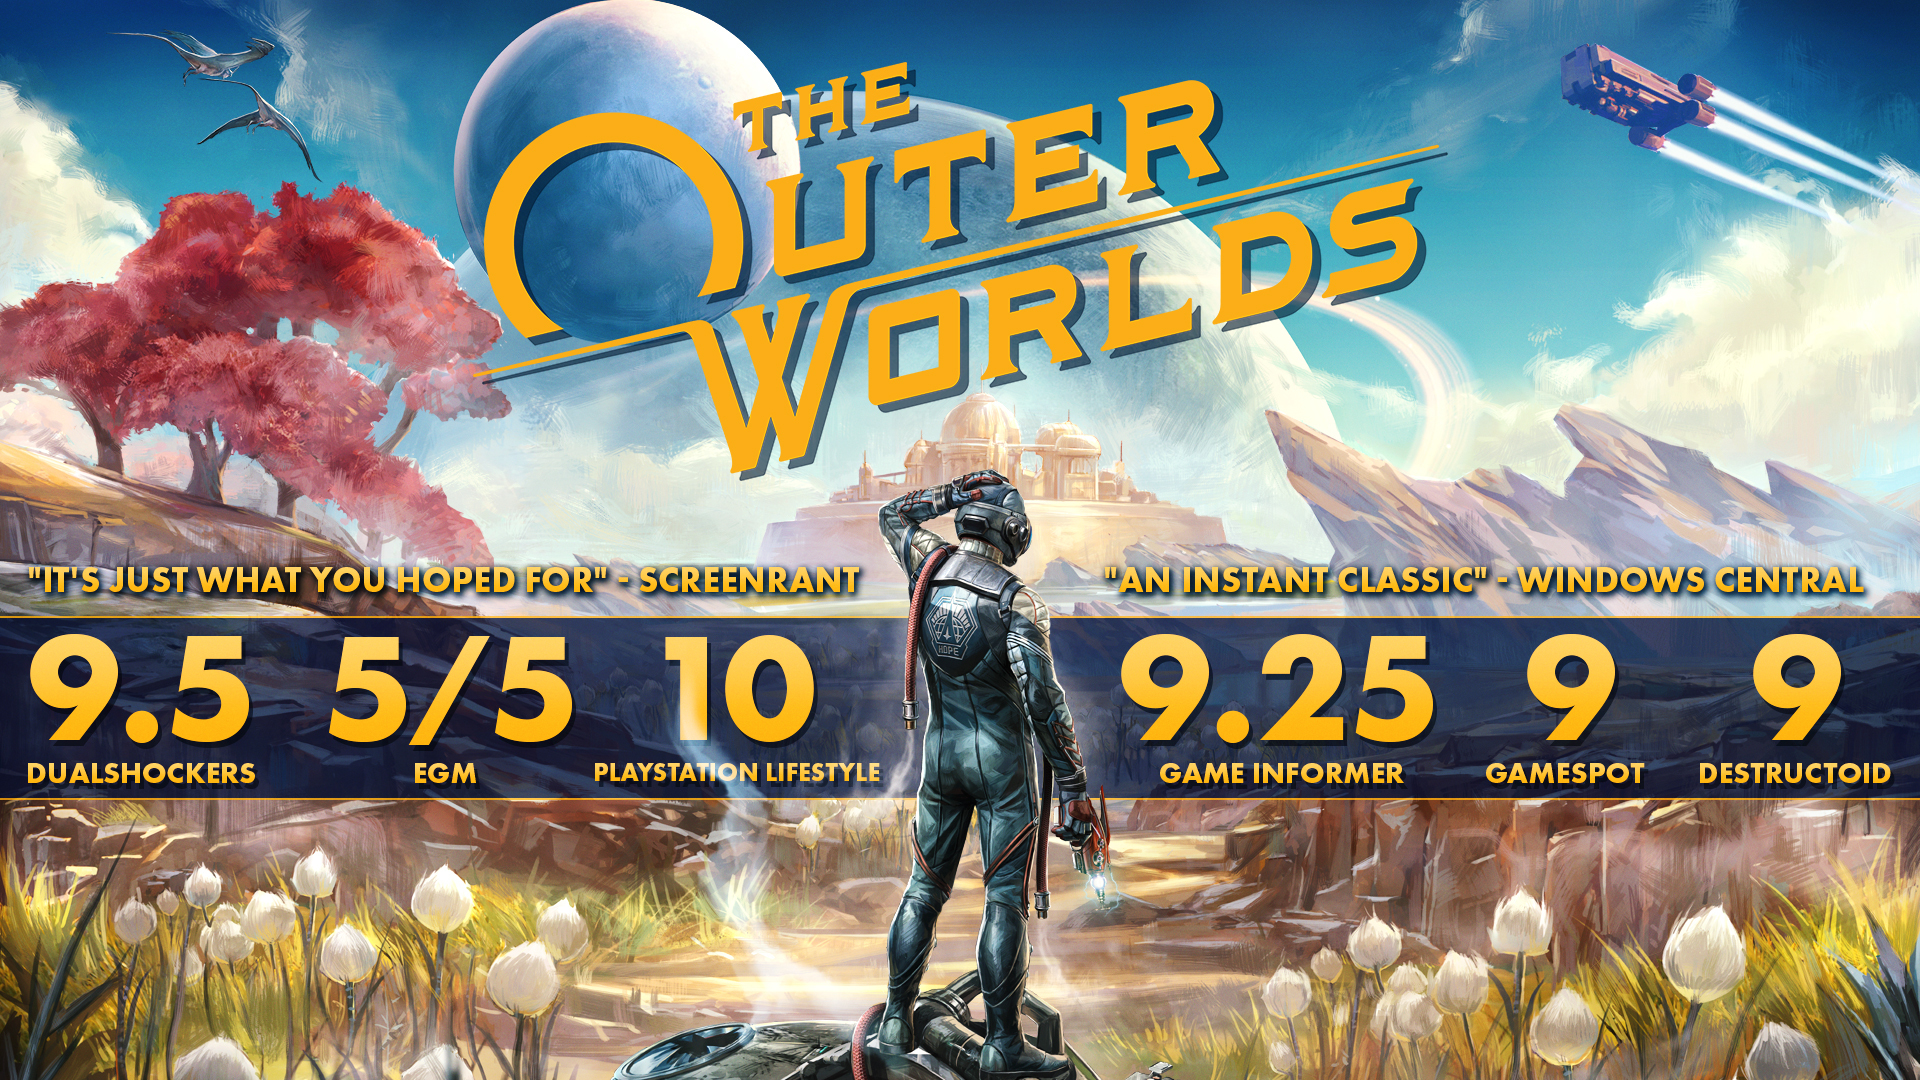 The Outer Worlds Pc Epic Games Fanatical